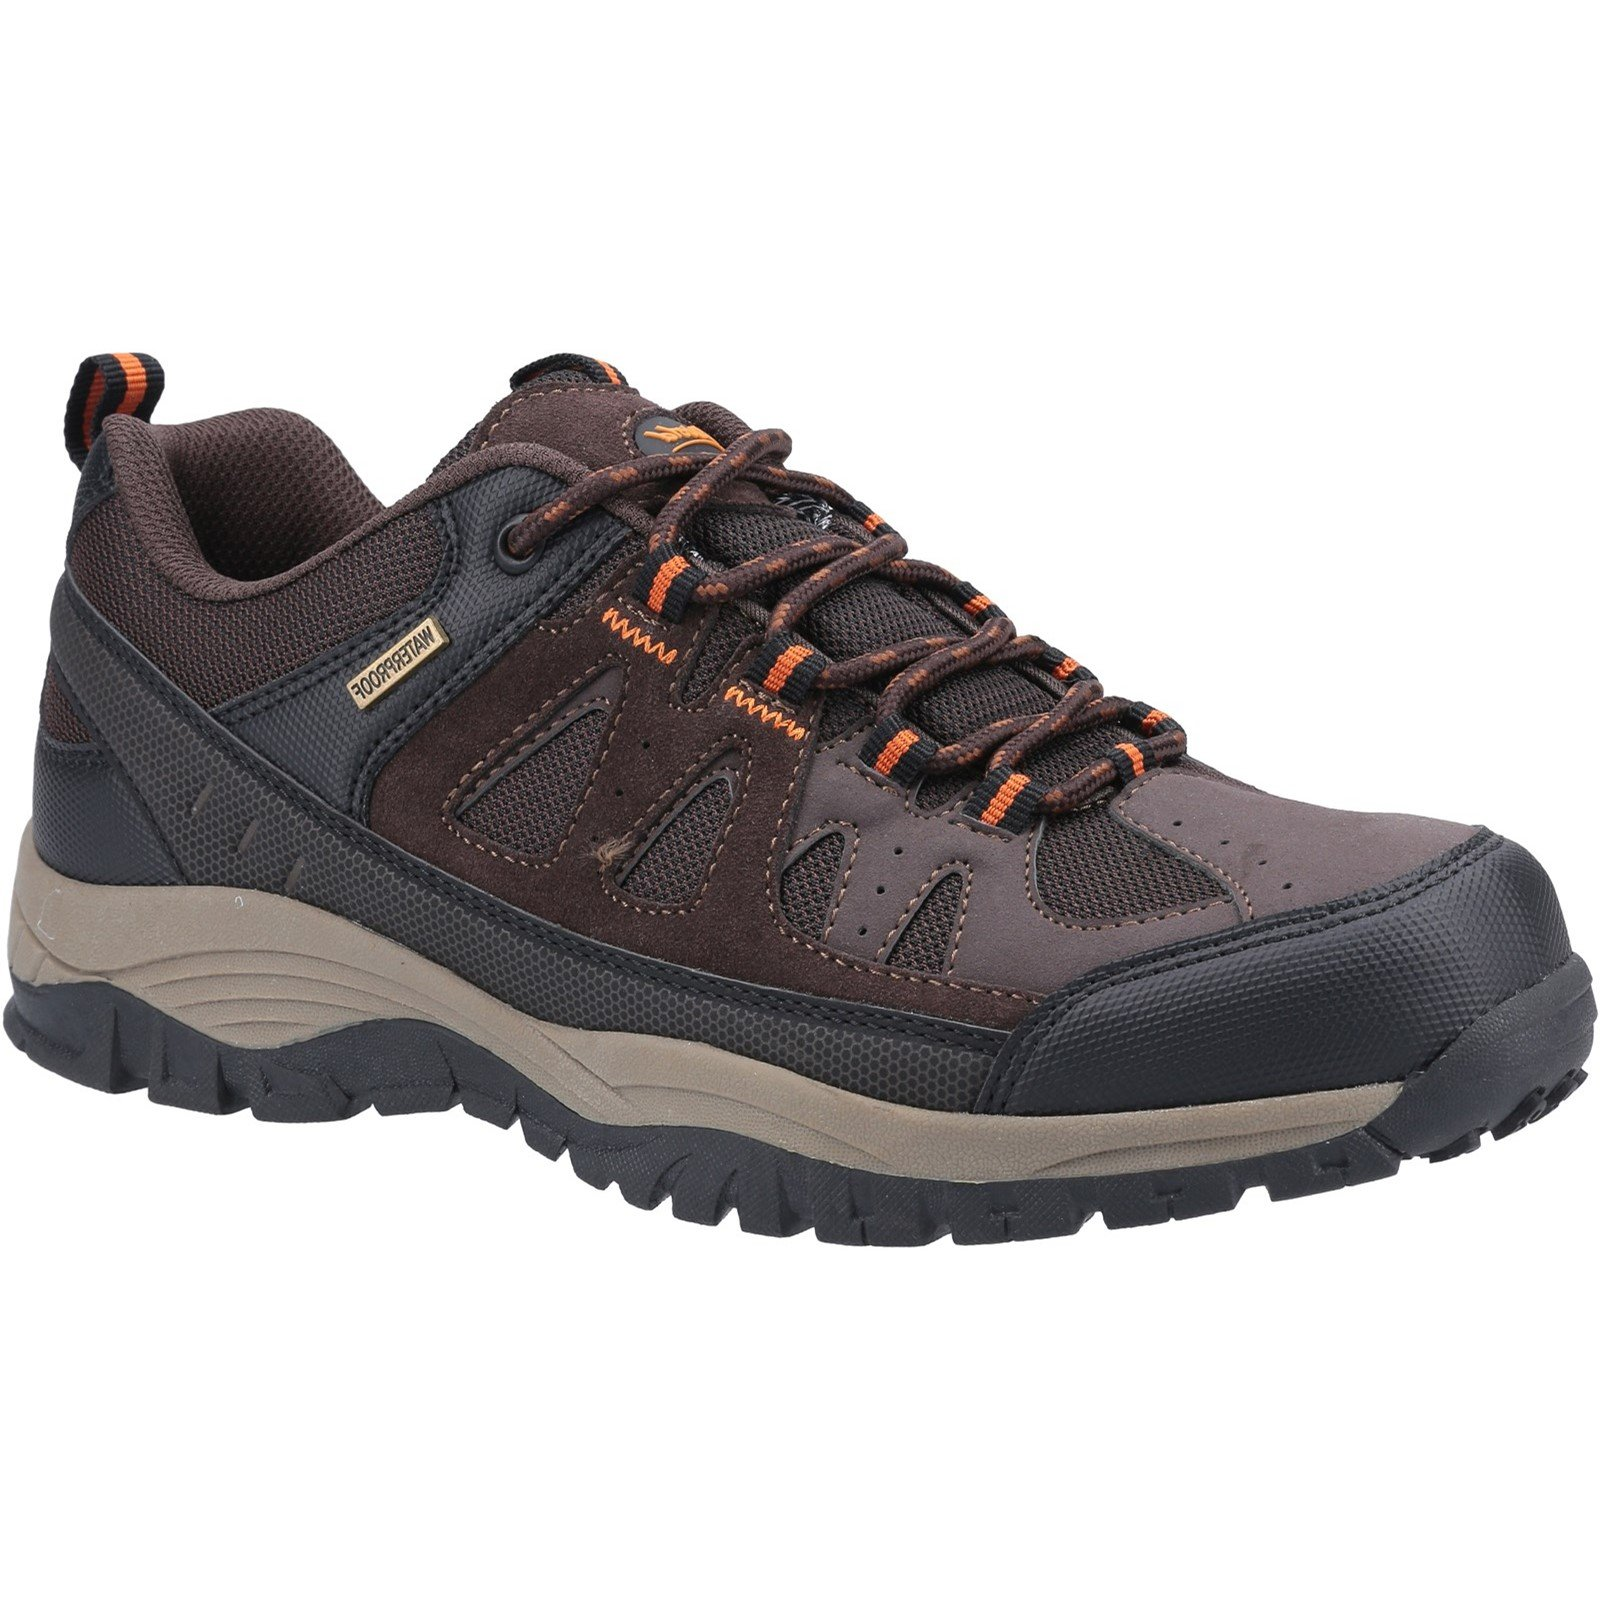 Cotswold Men's Maisemore Low Hiking Boot 32987 - Brown 8